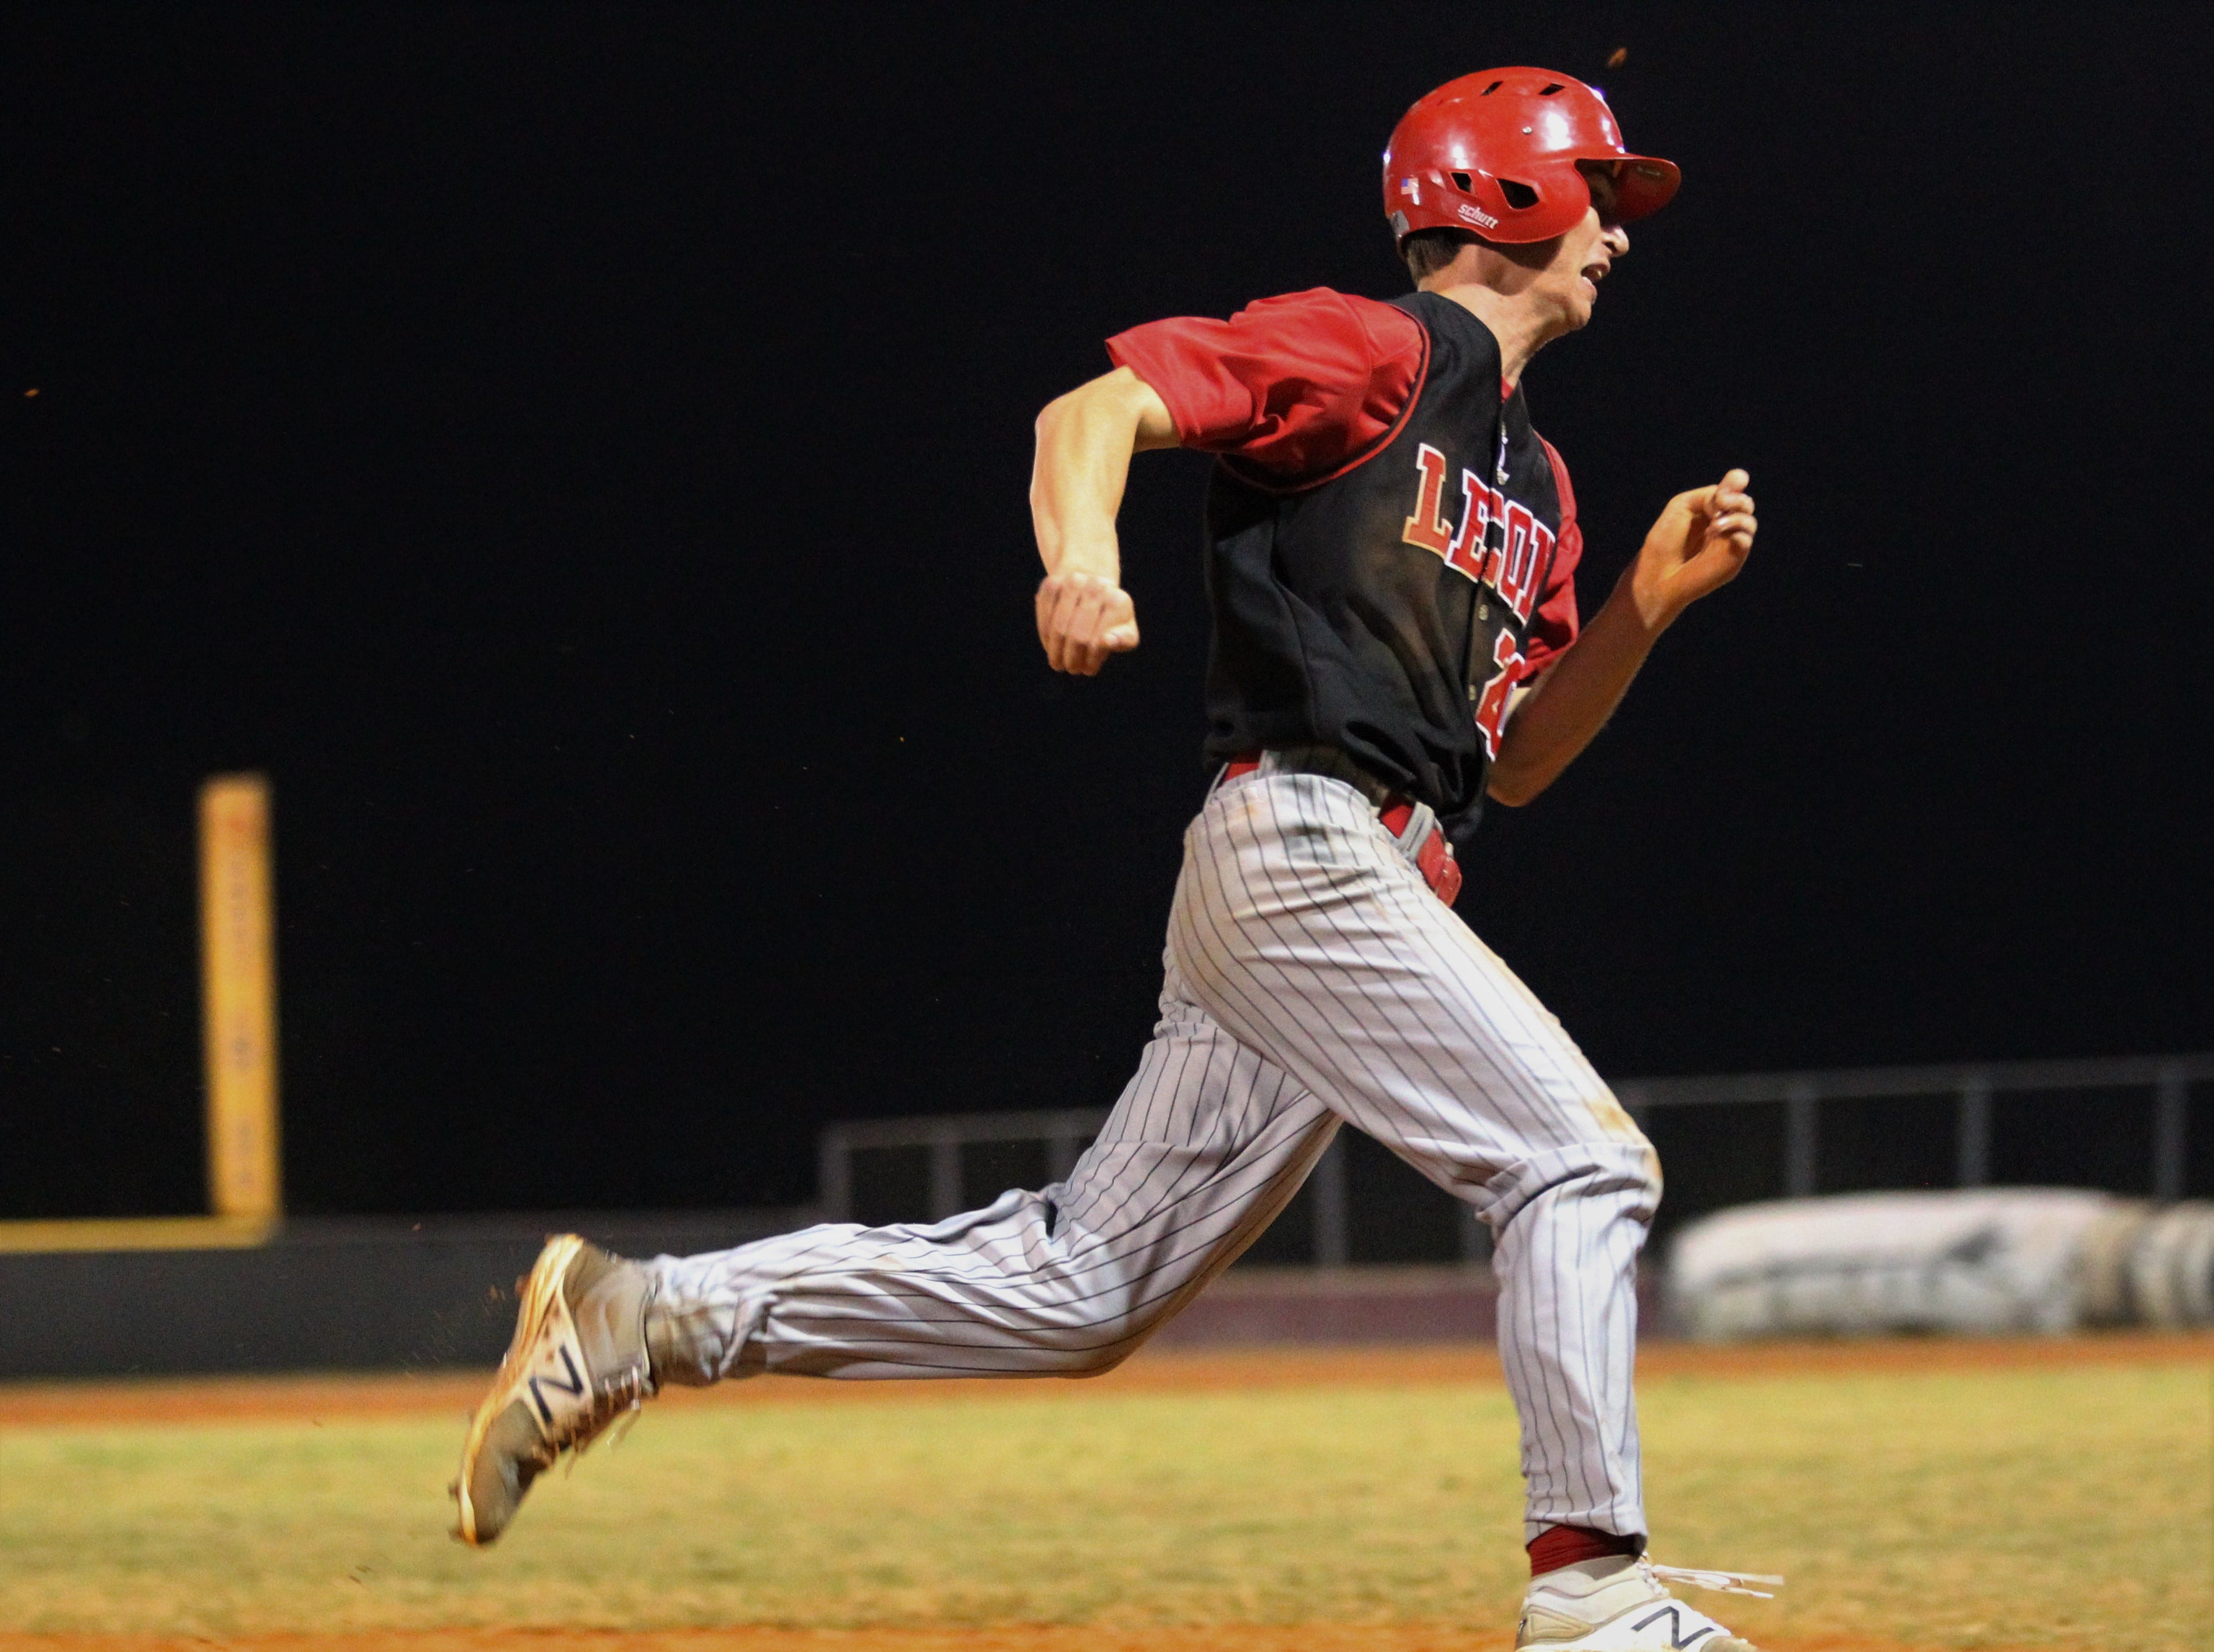 Leon senior Drew Behenna races around third on the game's final out as Chiles won an 11-6 home game against Leon on Friday, April 5, 2019, to force a season split. The Lions won 3-0 earlier in the week.